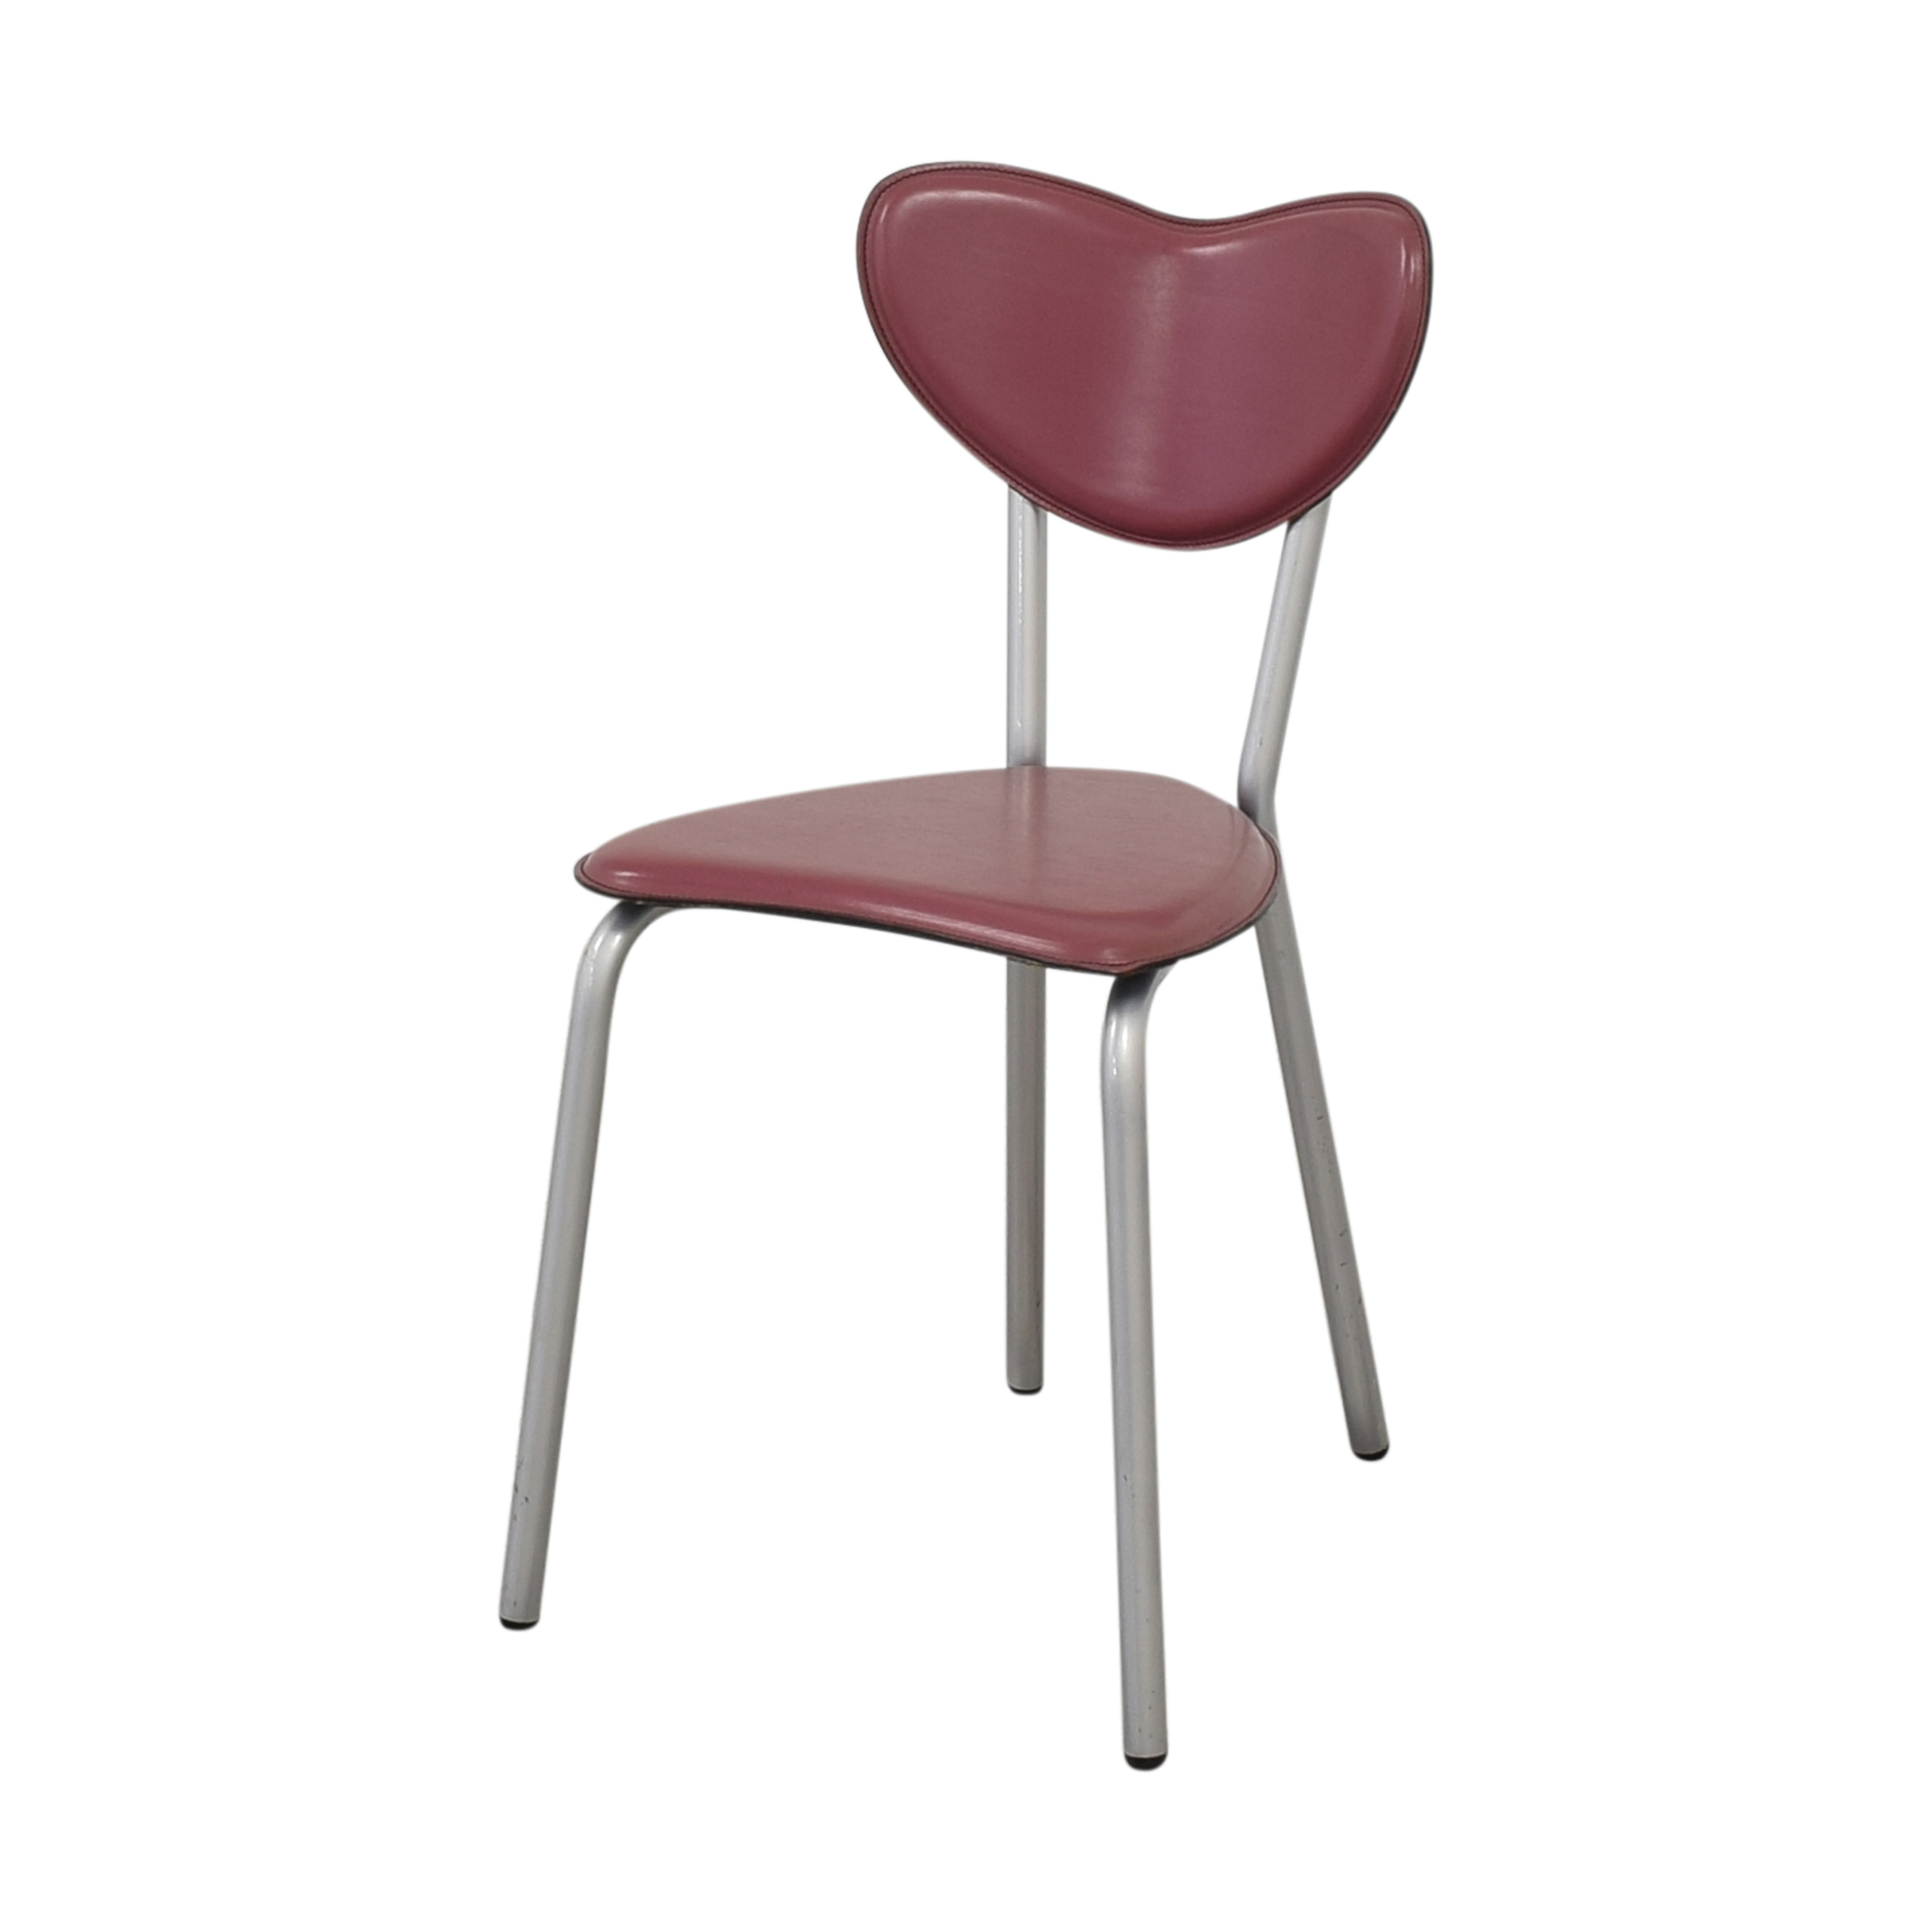 Pellizzoni Modern Dining Chairs / Dining Chairs